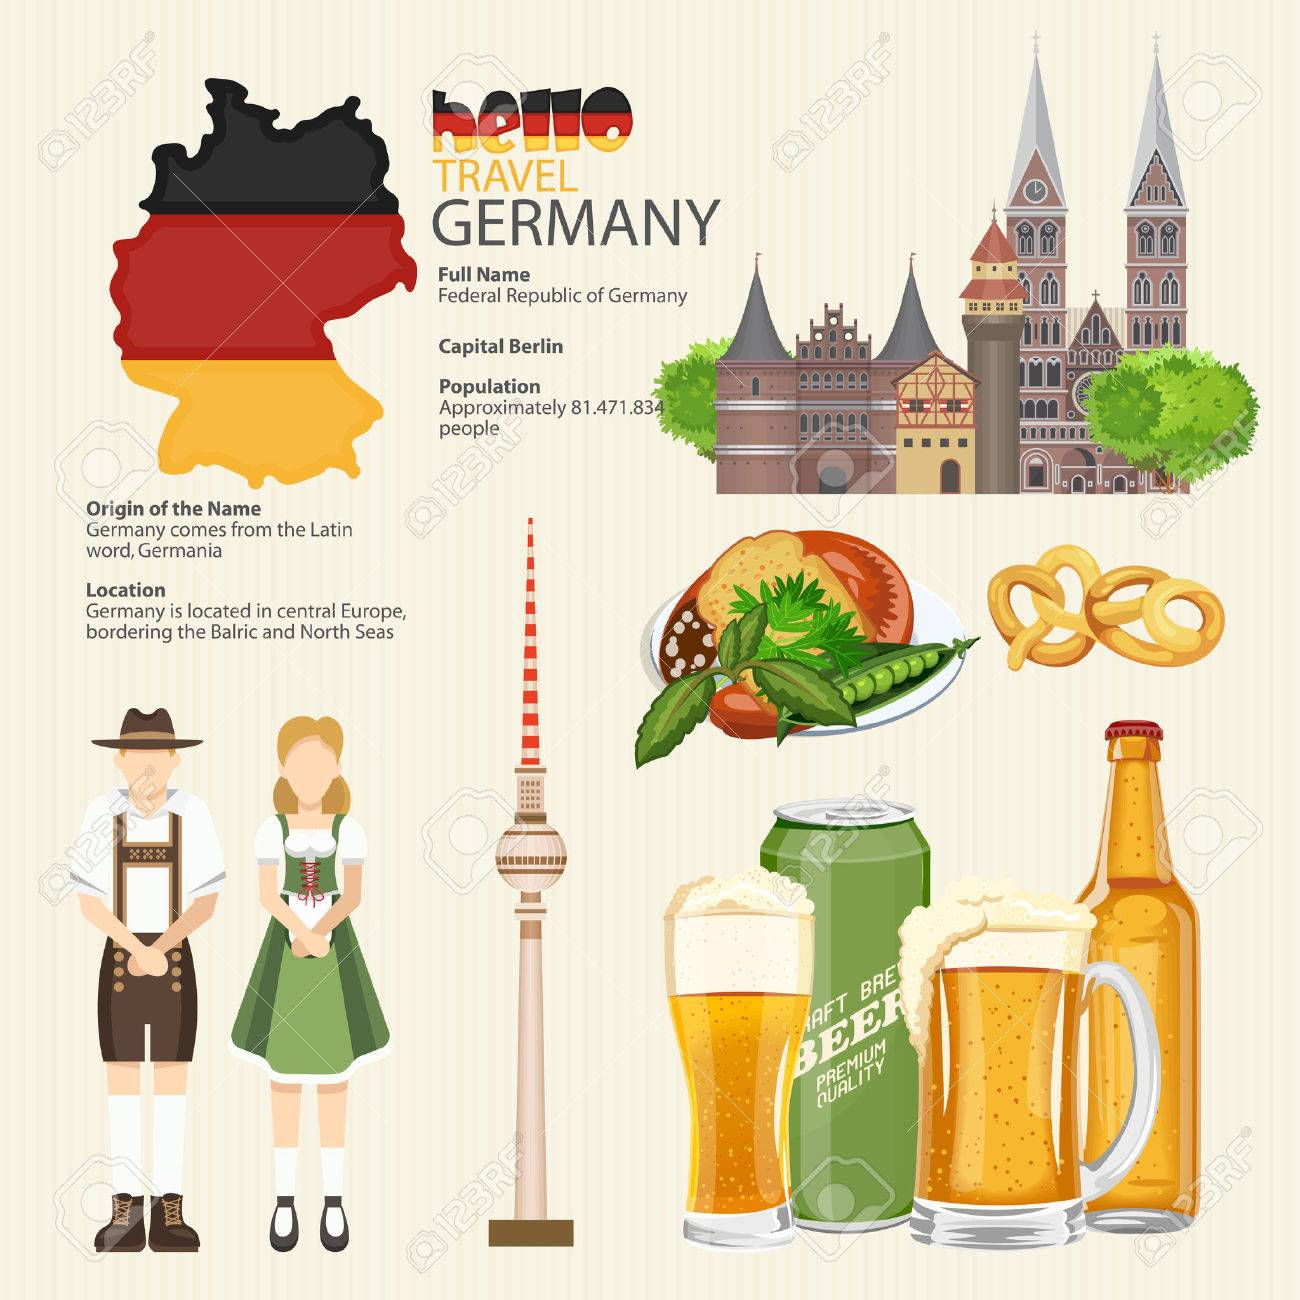 Germany travel poster. Infographic. Trip architecture concept. Touristic background with landmarks, castles, monuments, german cuisine, beer, sausage, pretzel. - 56672320